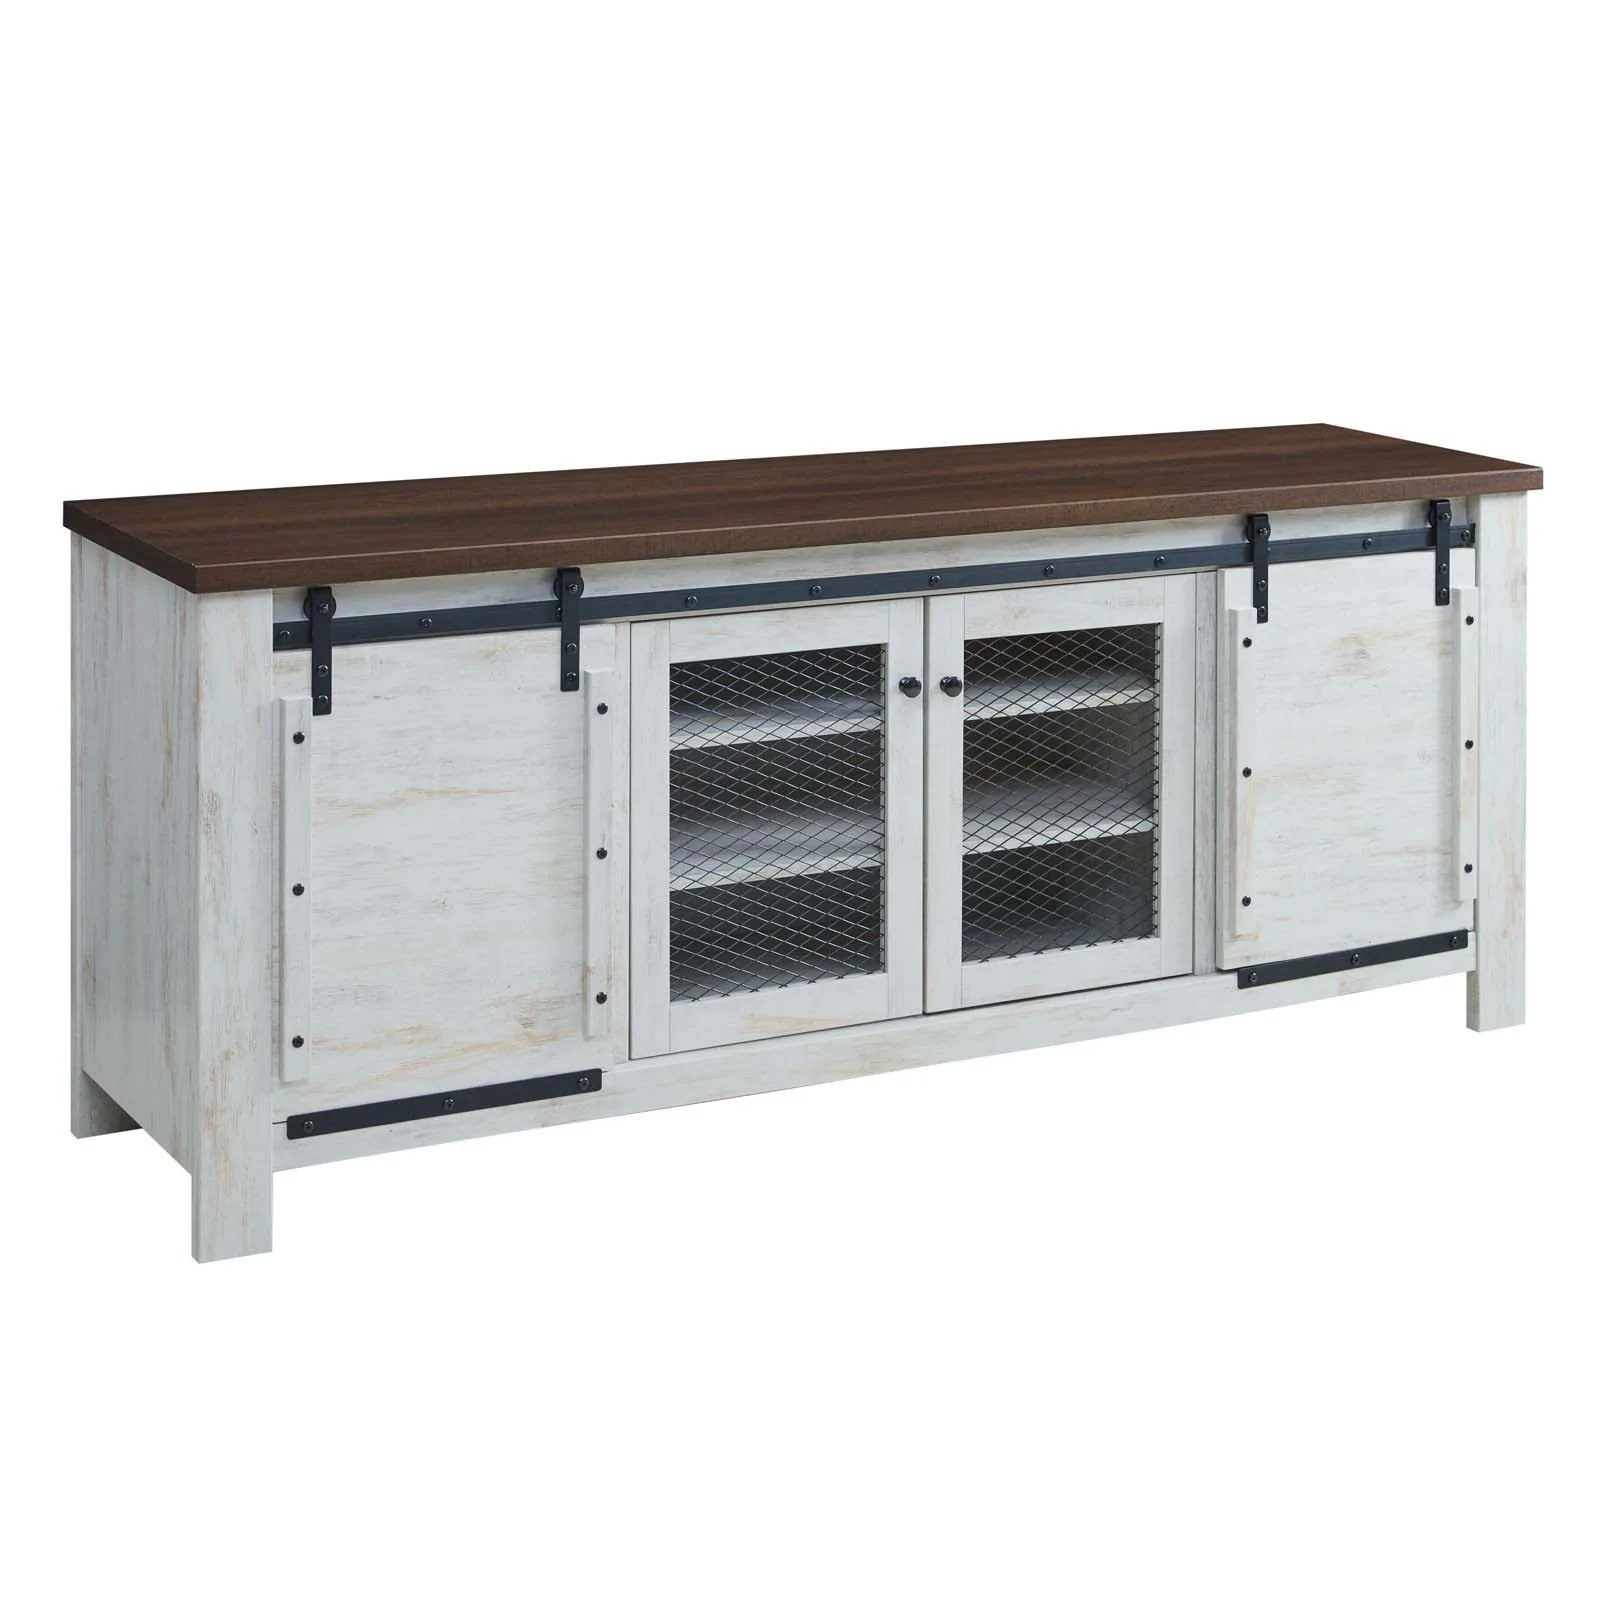 Buffet Table For Sale Modway Sideboards On Sale Eei 3490 Whi Bennington 70